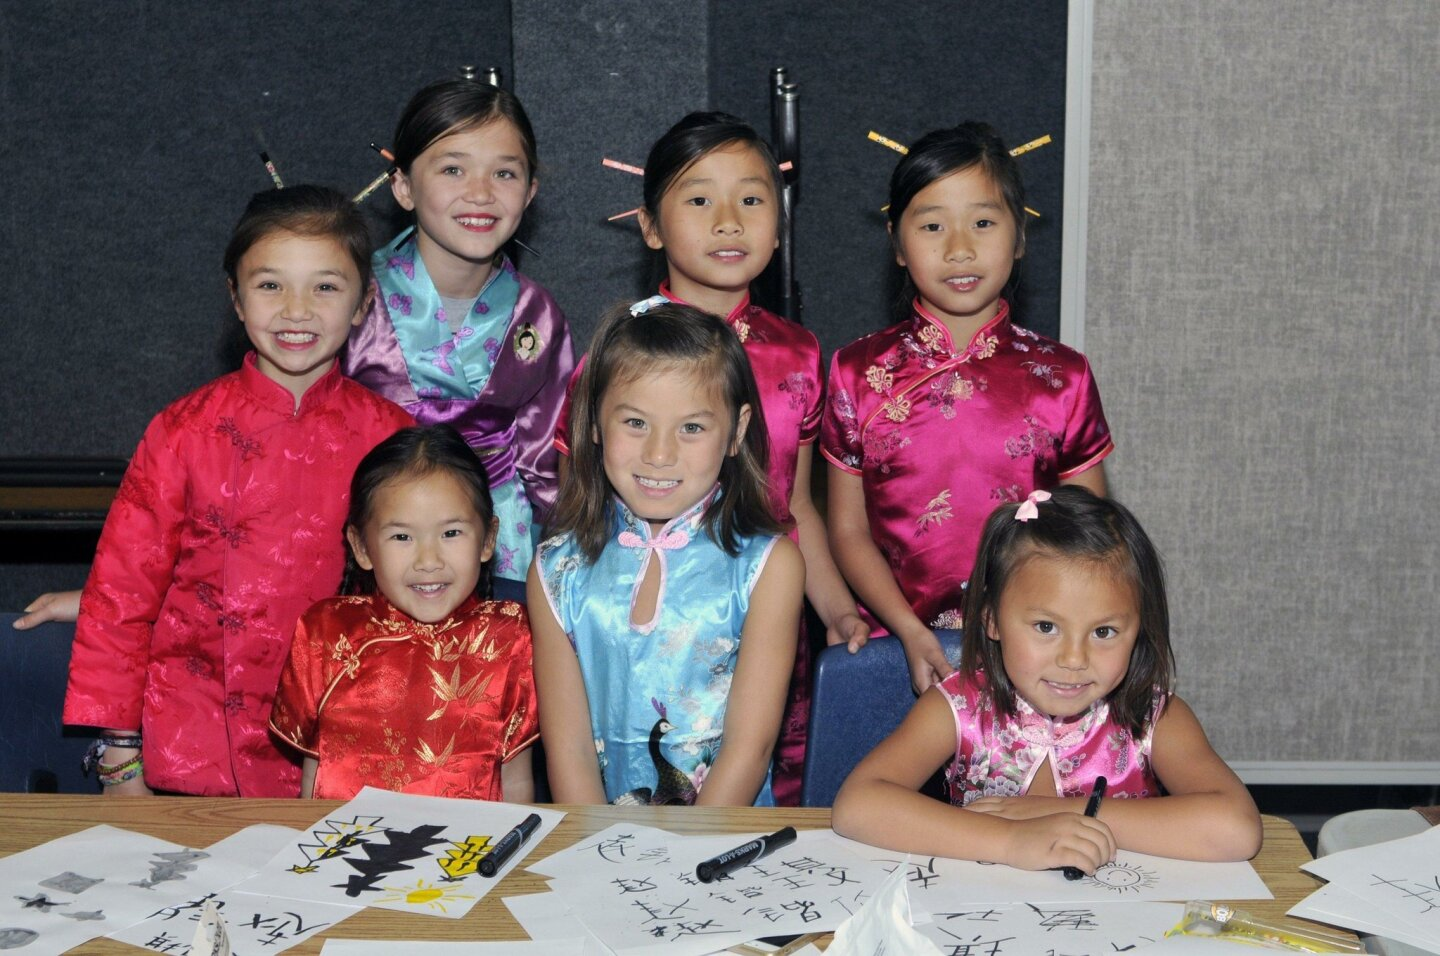 Students representing China are Kendall, Dillan, Joia, Issa, Abigail, Jade and Chyna